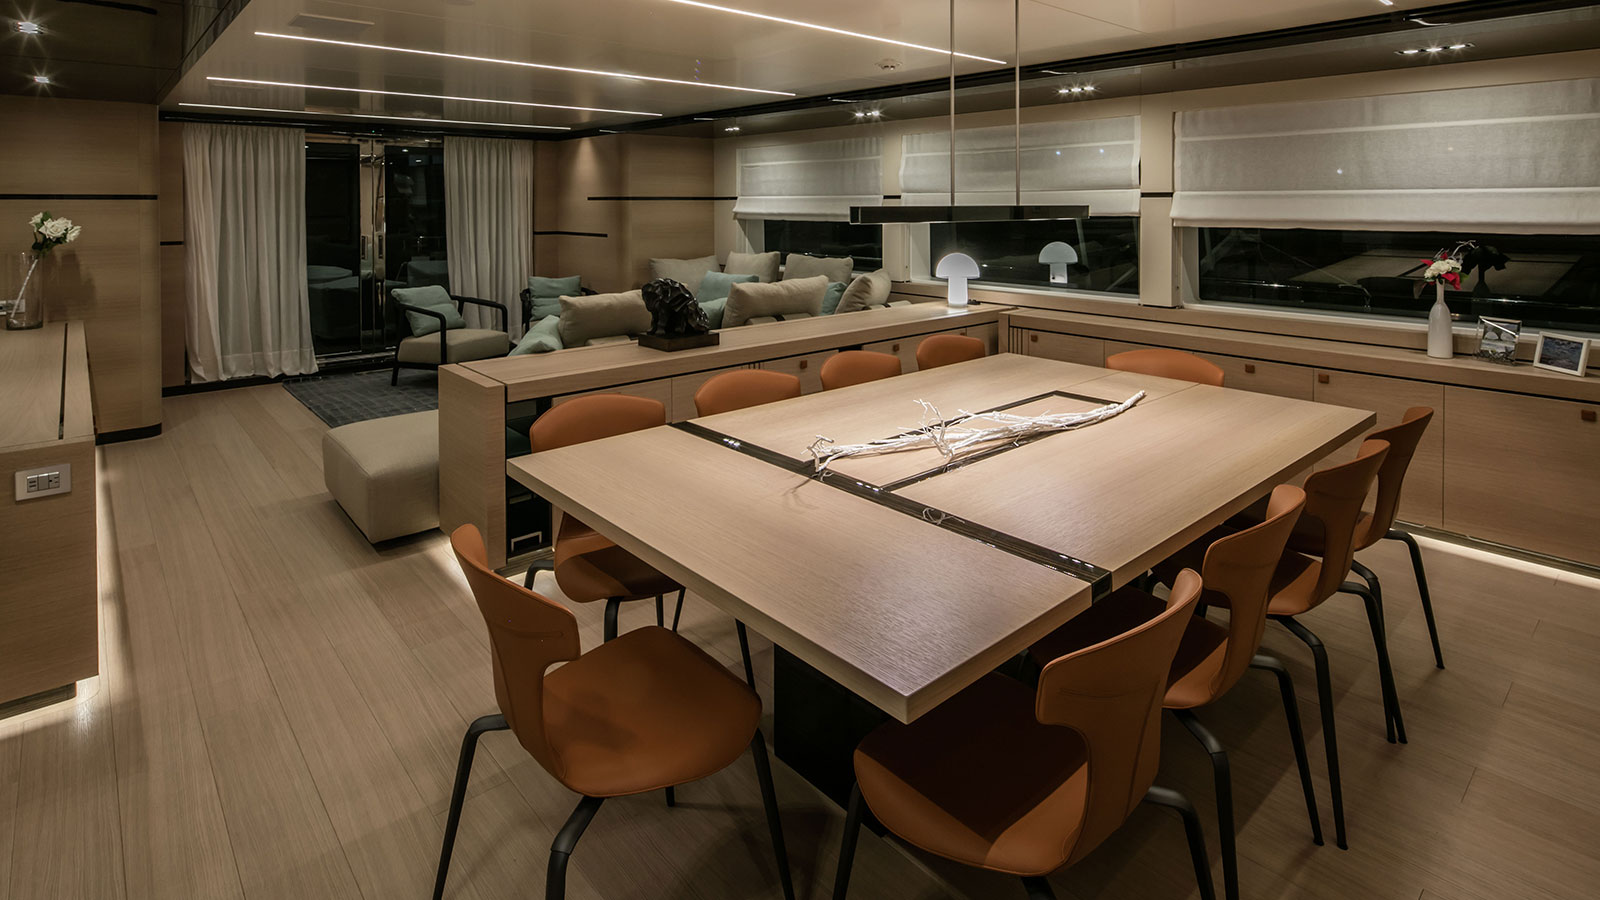 the-dining-area-of-the-cantiere-delle-marche-nauta-air-111-yacht-hyhma